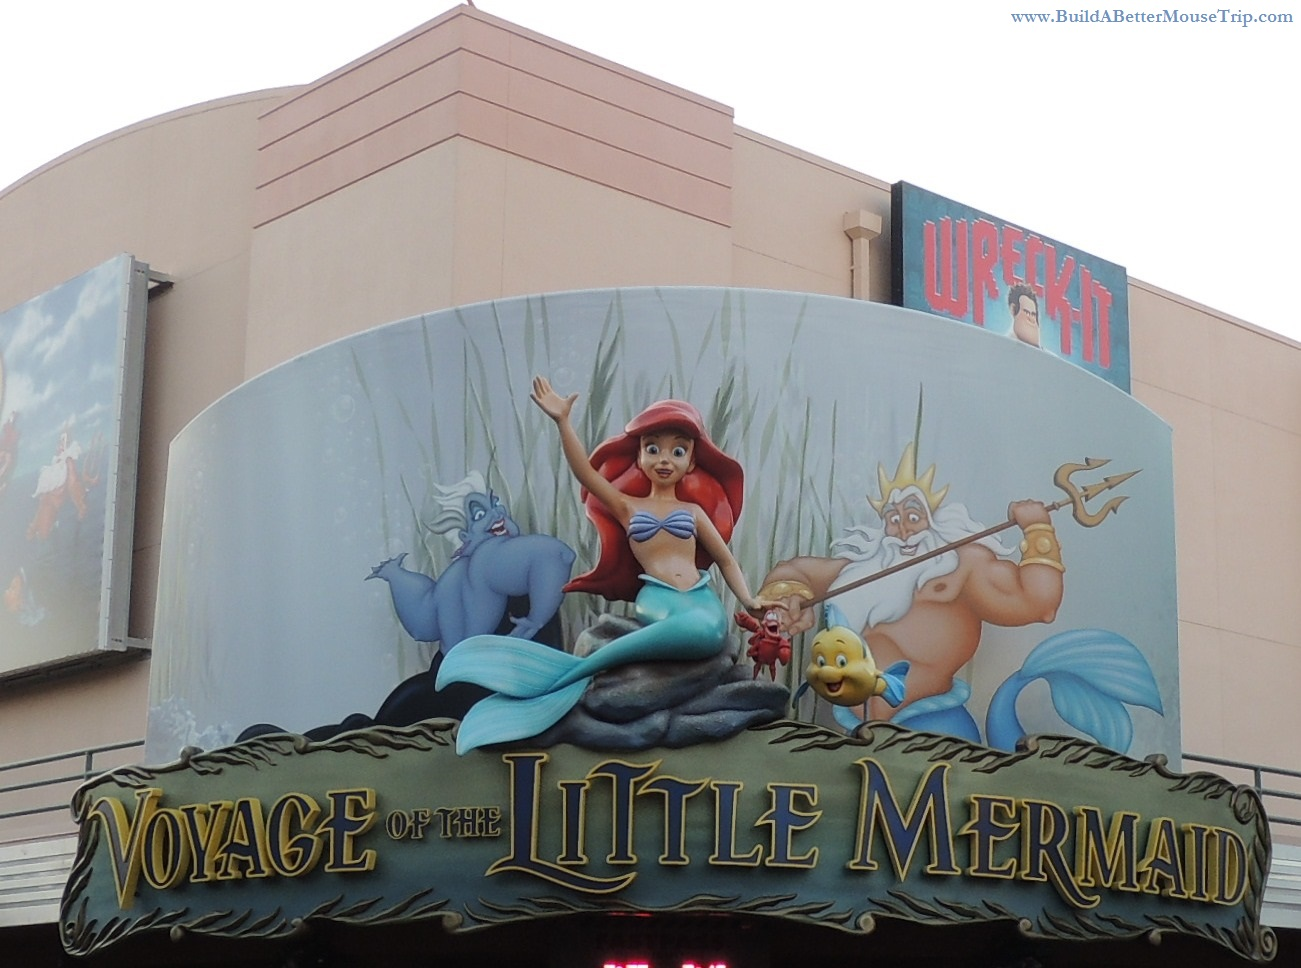 Voyage of the Little Mermaid, a live show offered several times daily in Disney's Hollywood Studios at Disney World.